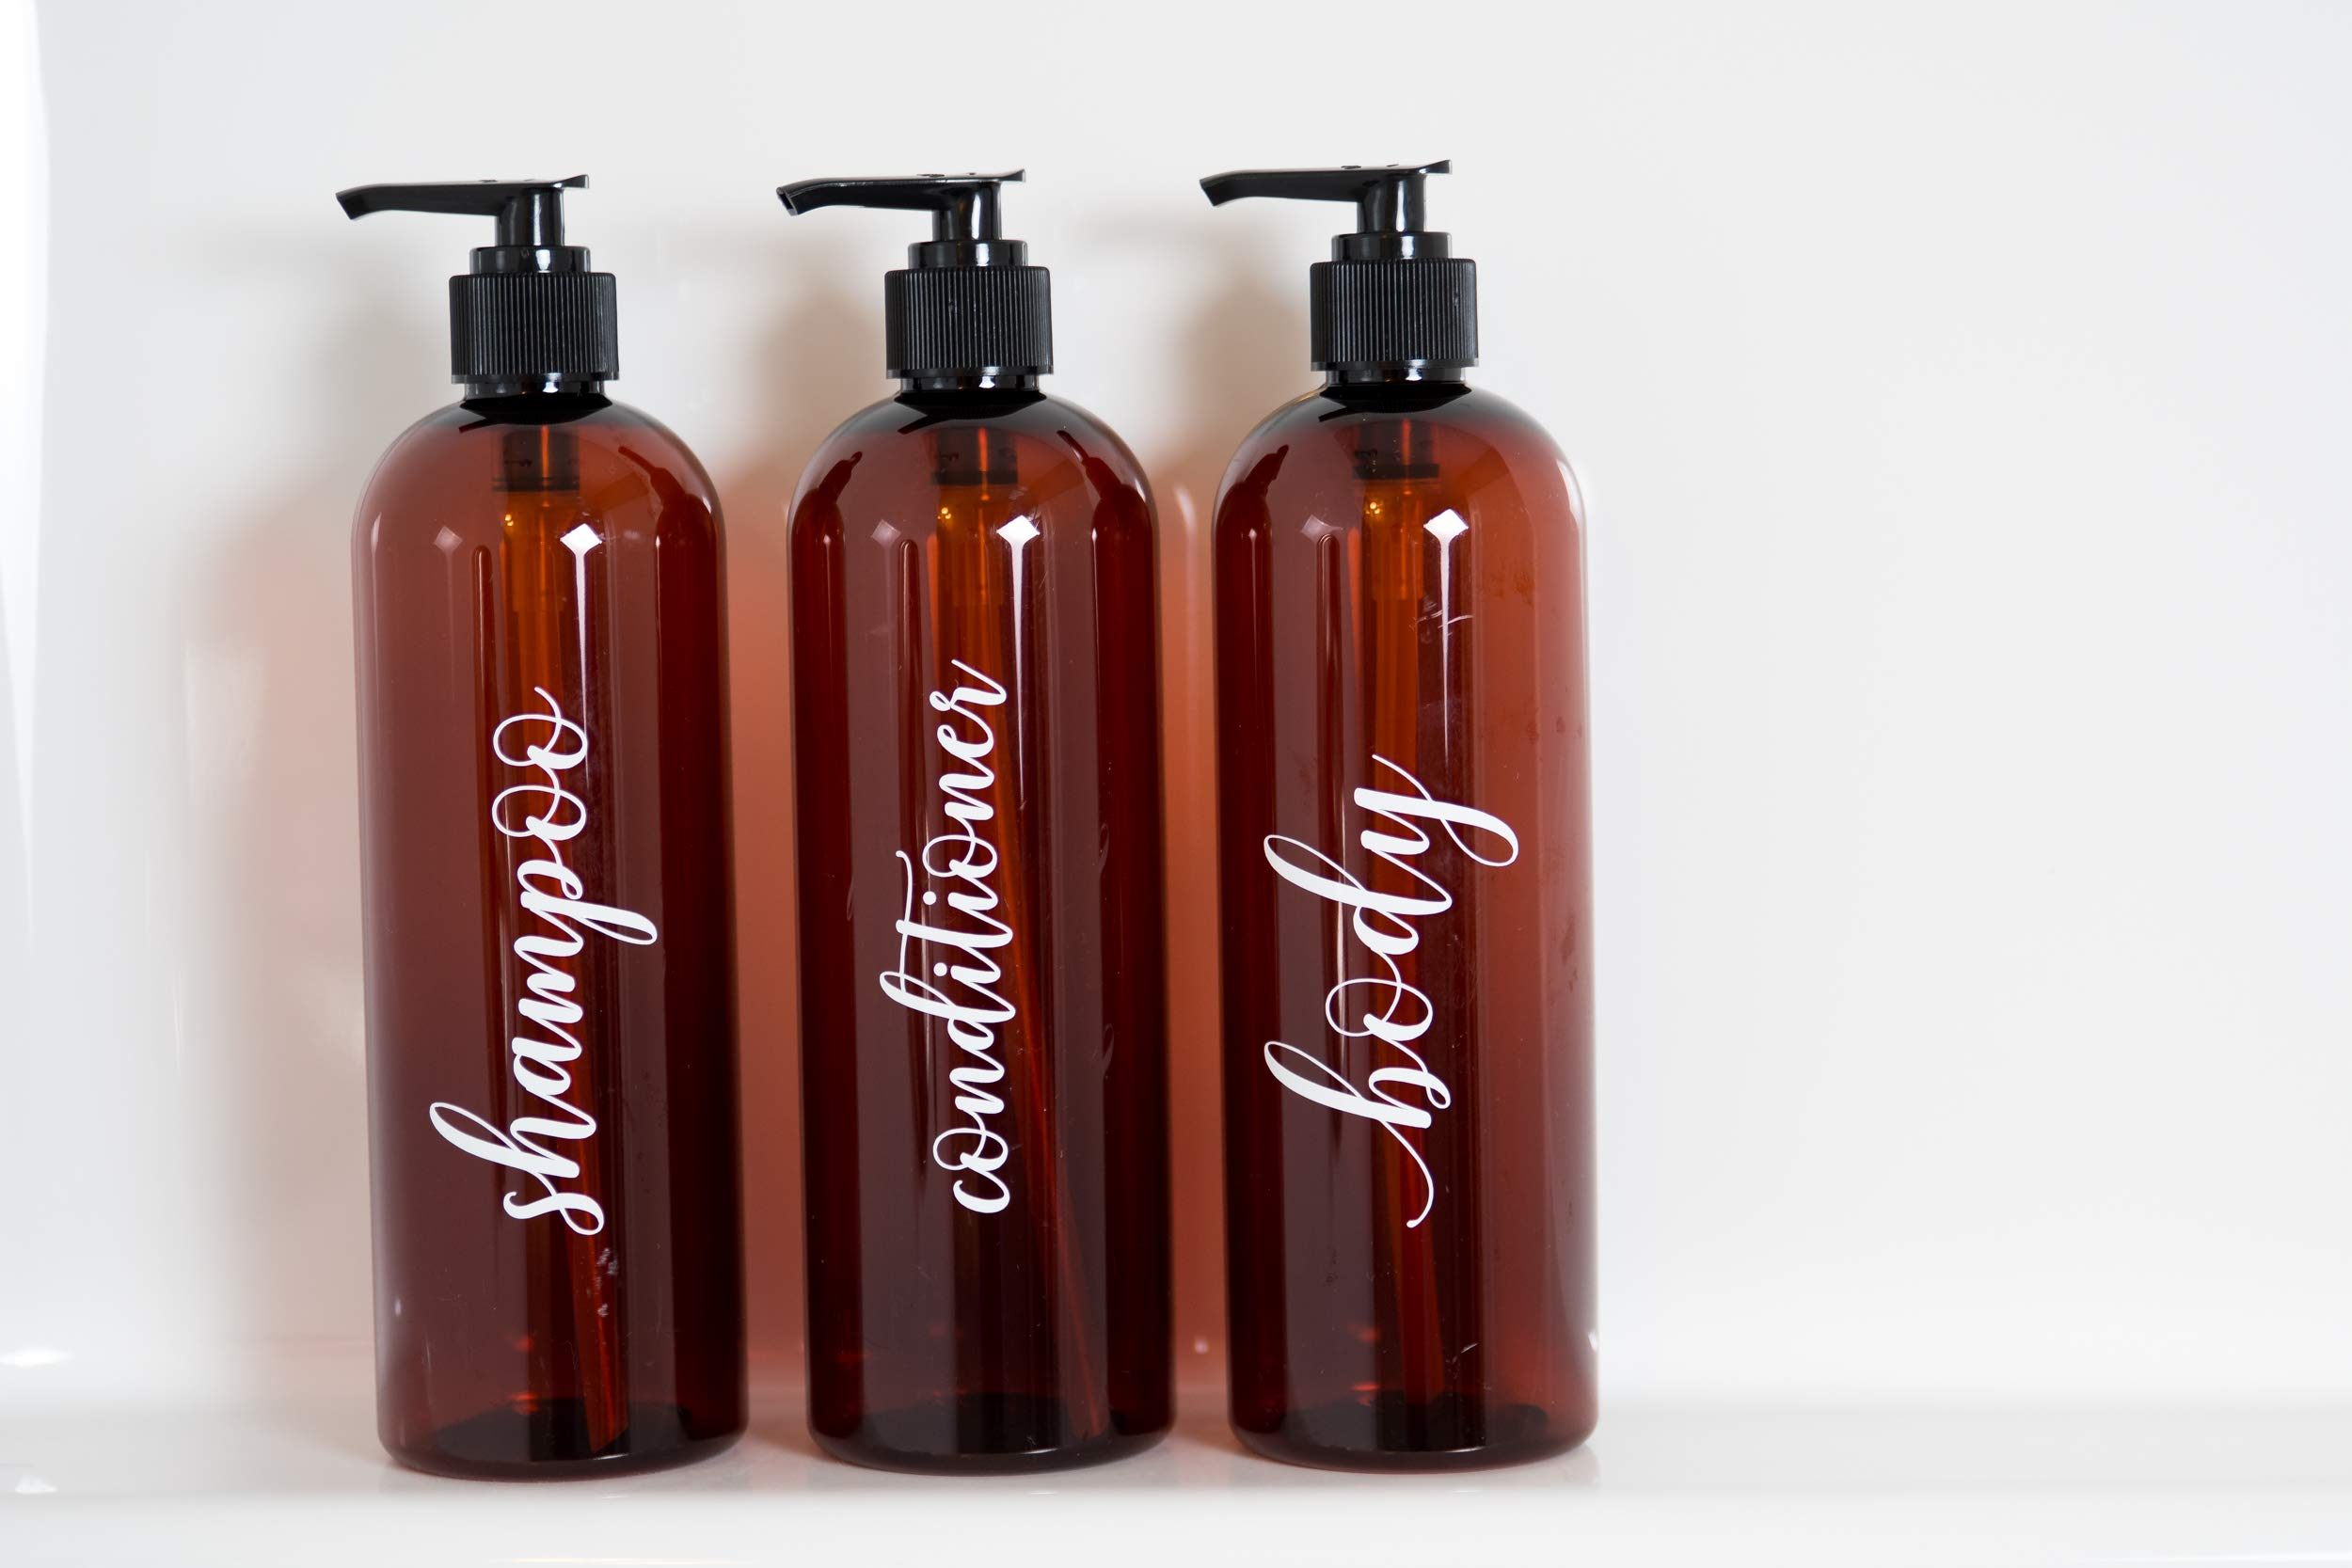 Heartland Lettering Labeled Shower Bottles Refillable, Amber Plastic Bottles with Pump 16 oz, Set of 3, Shampoo Conditioner and Body Wash Dispensers for Shower